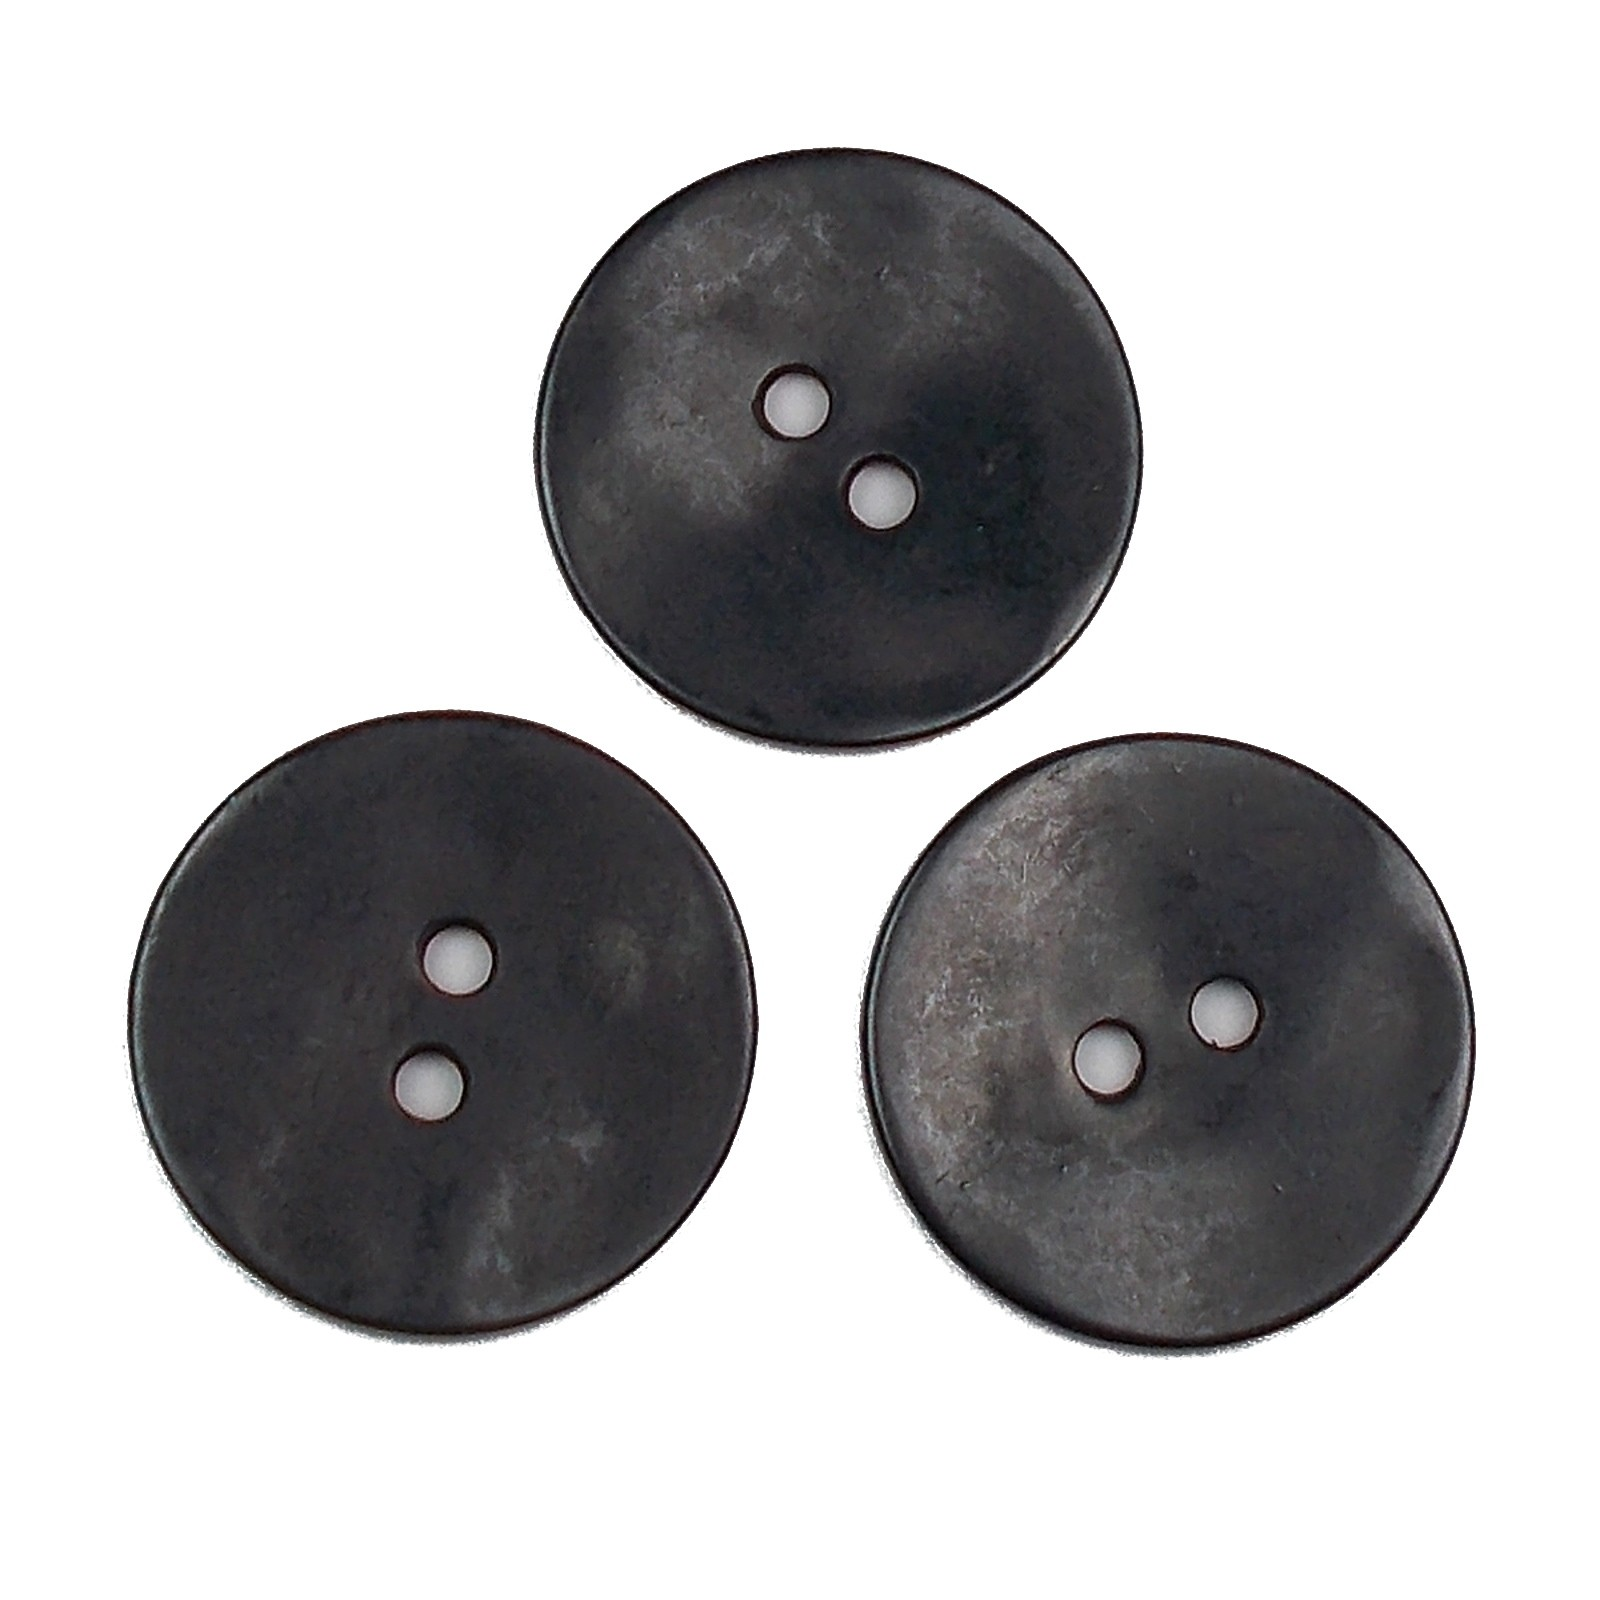 Metal Round Circle Buttons 34mm Black Pack of 3